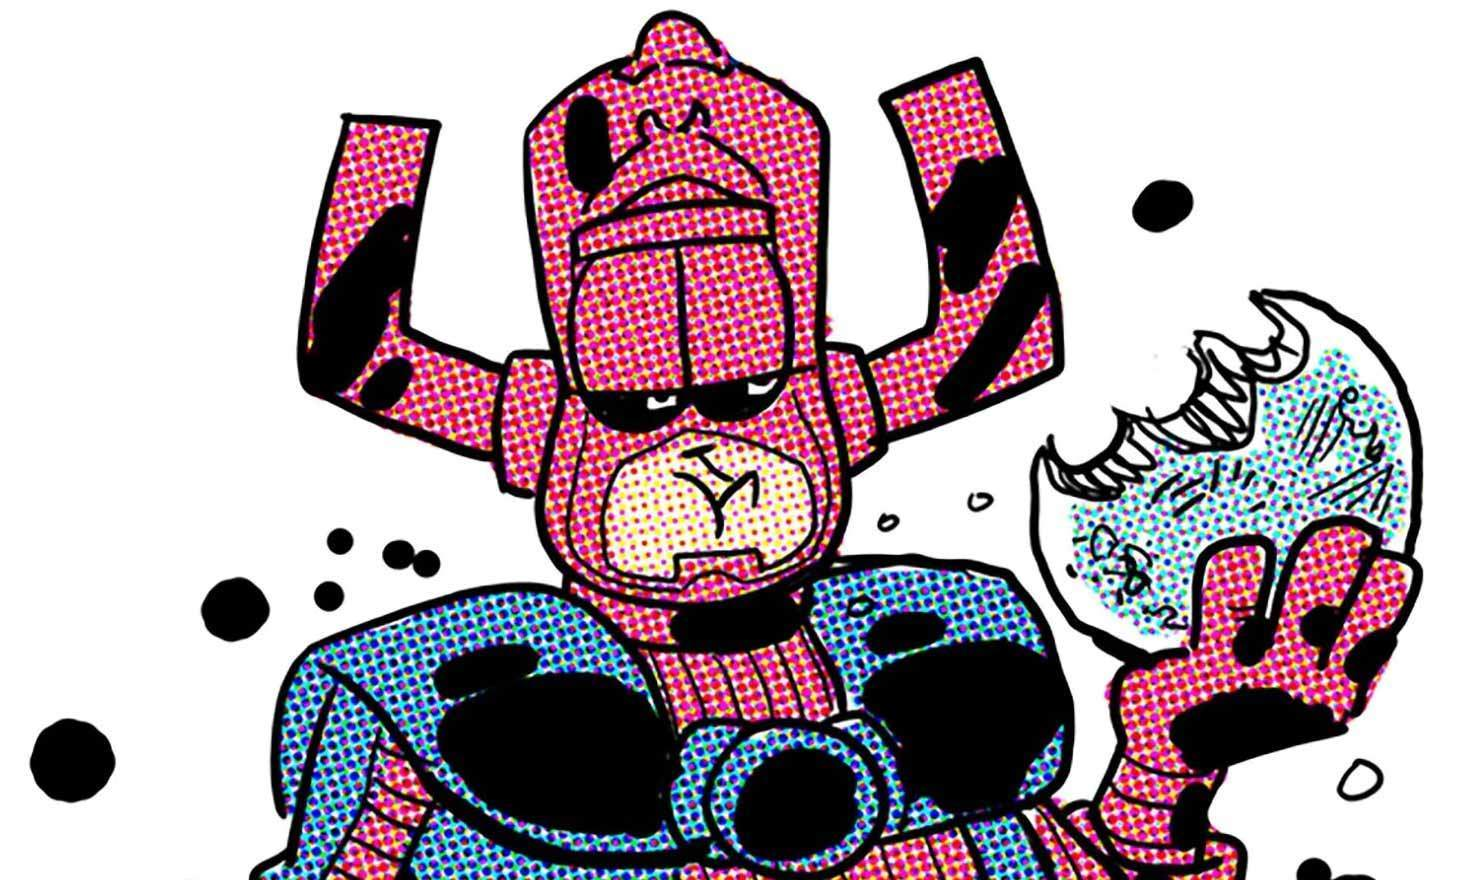 'Garfield' Creator Jim Davis Pens Galactus Story For Marvel Comics